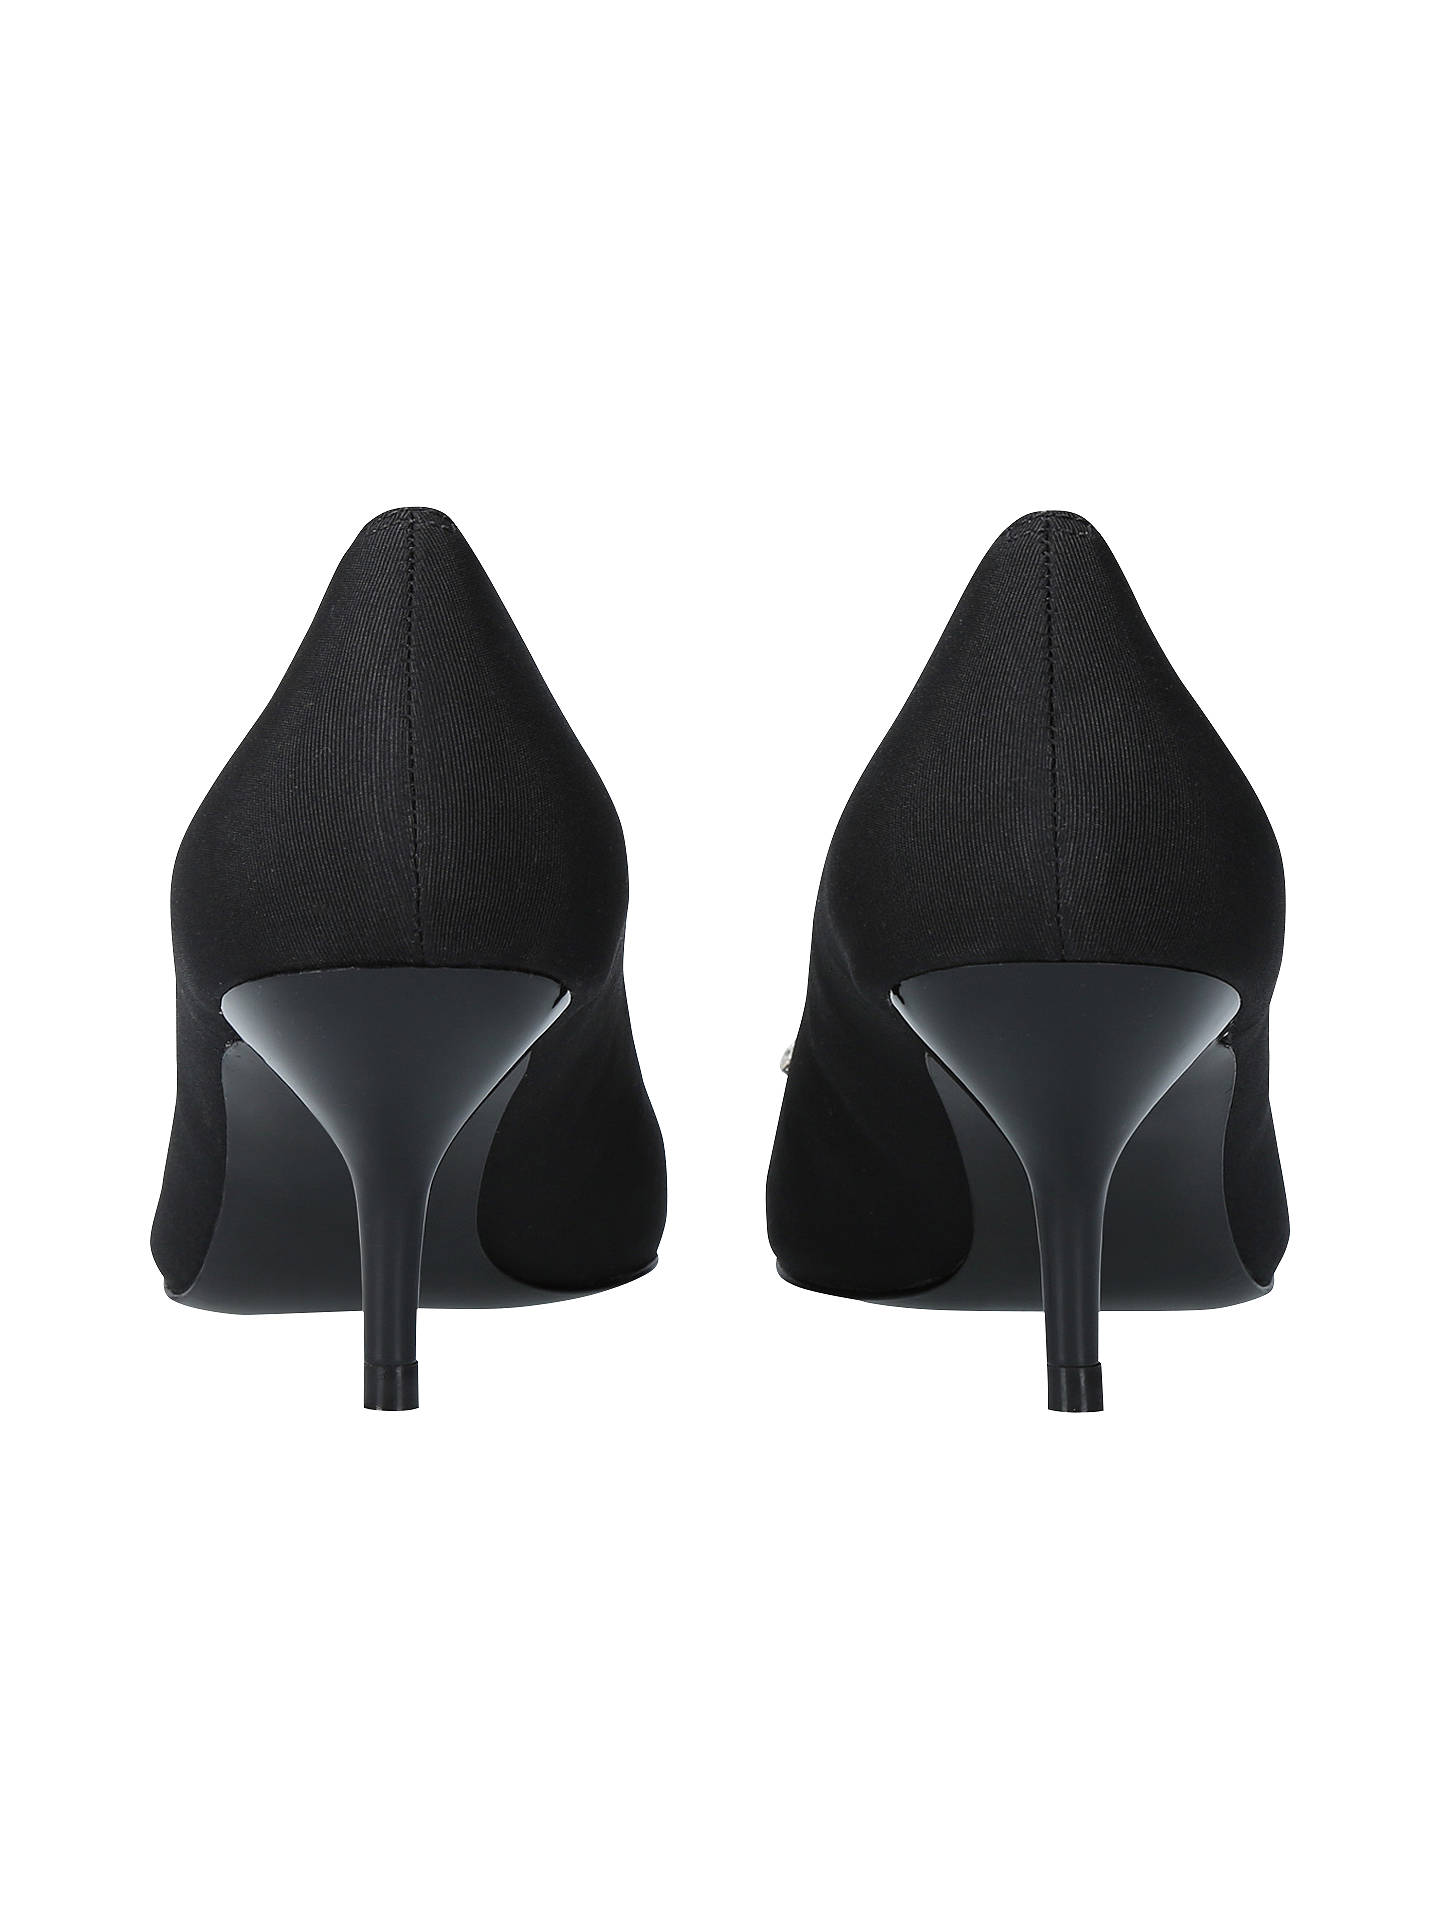 BuyKurt Geiger London Pia Jewelled Kitten Heeled Court Shoes, Black, 3 Online at johnlewis.com